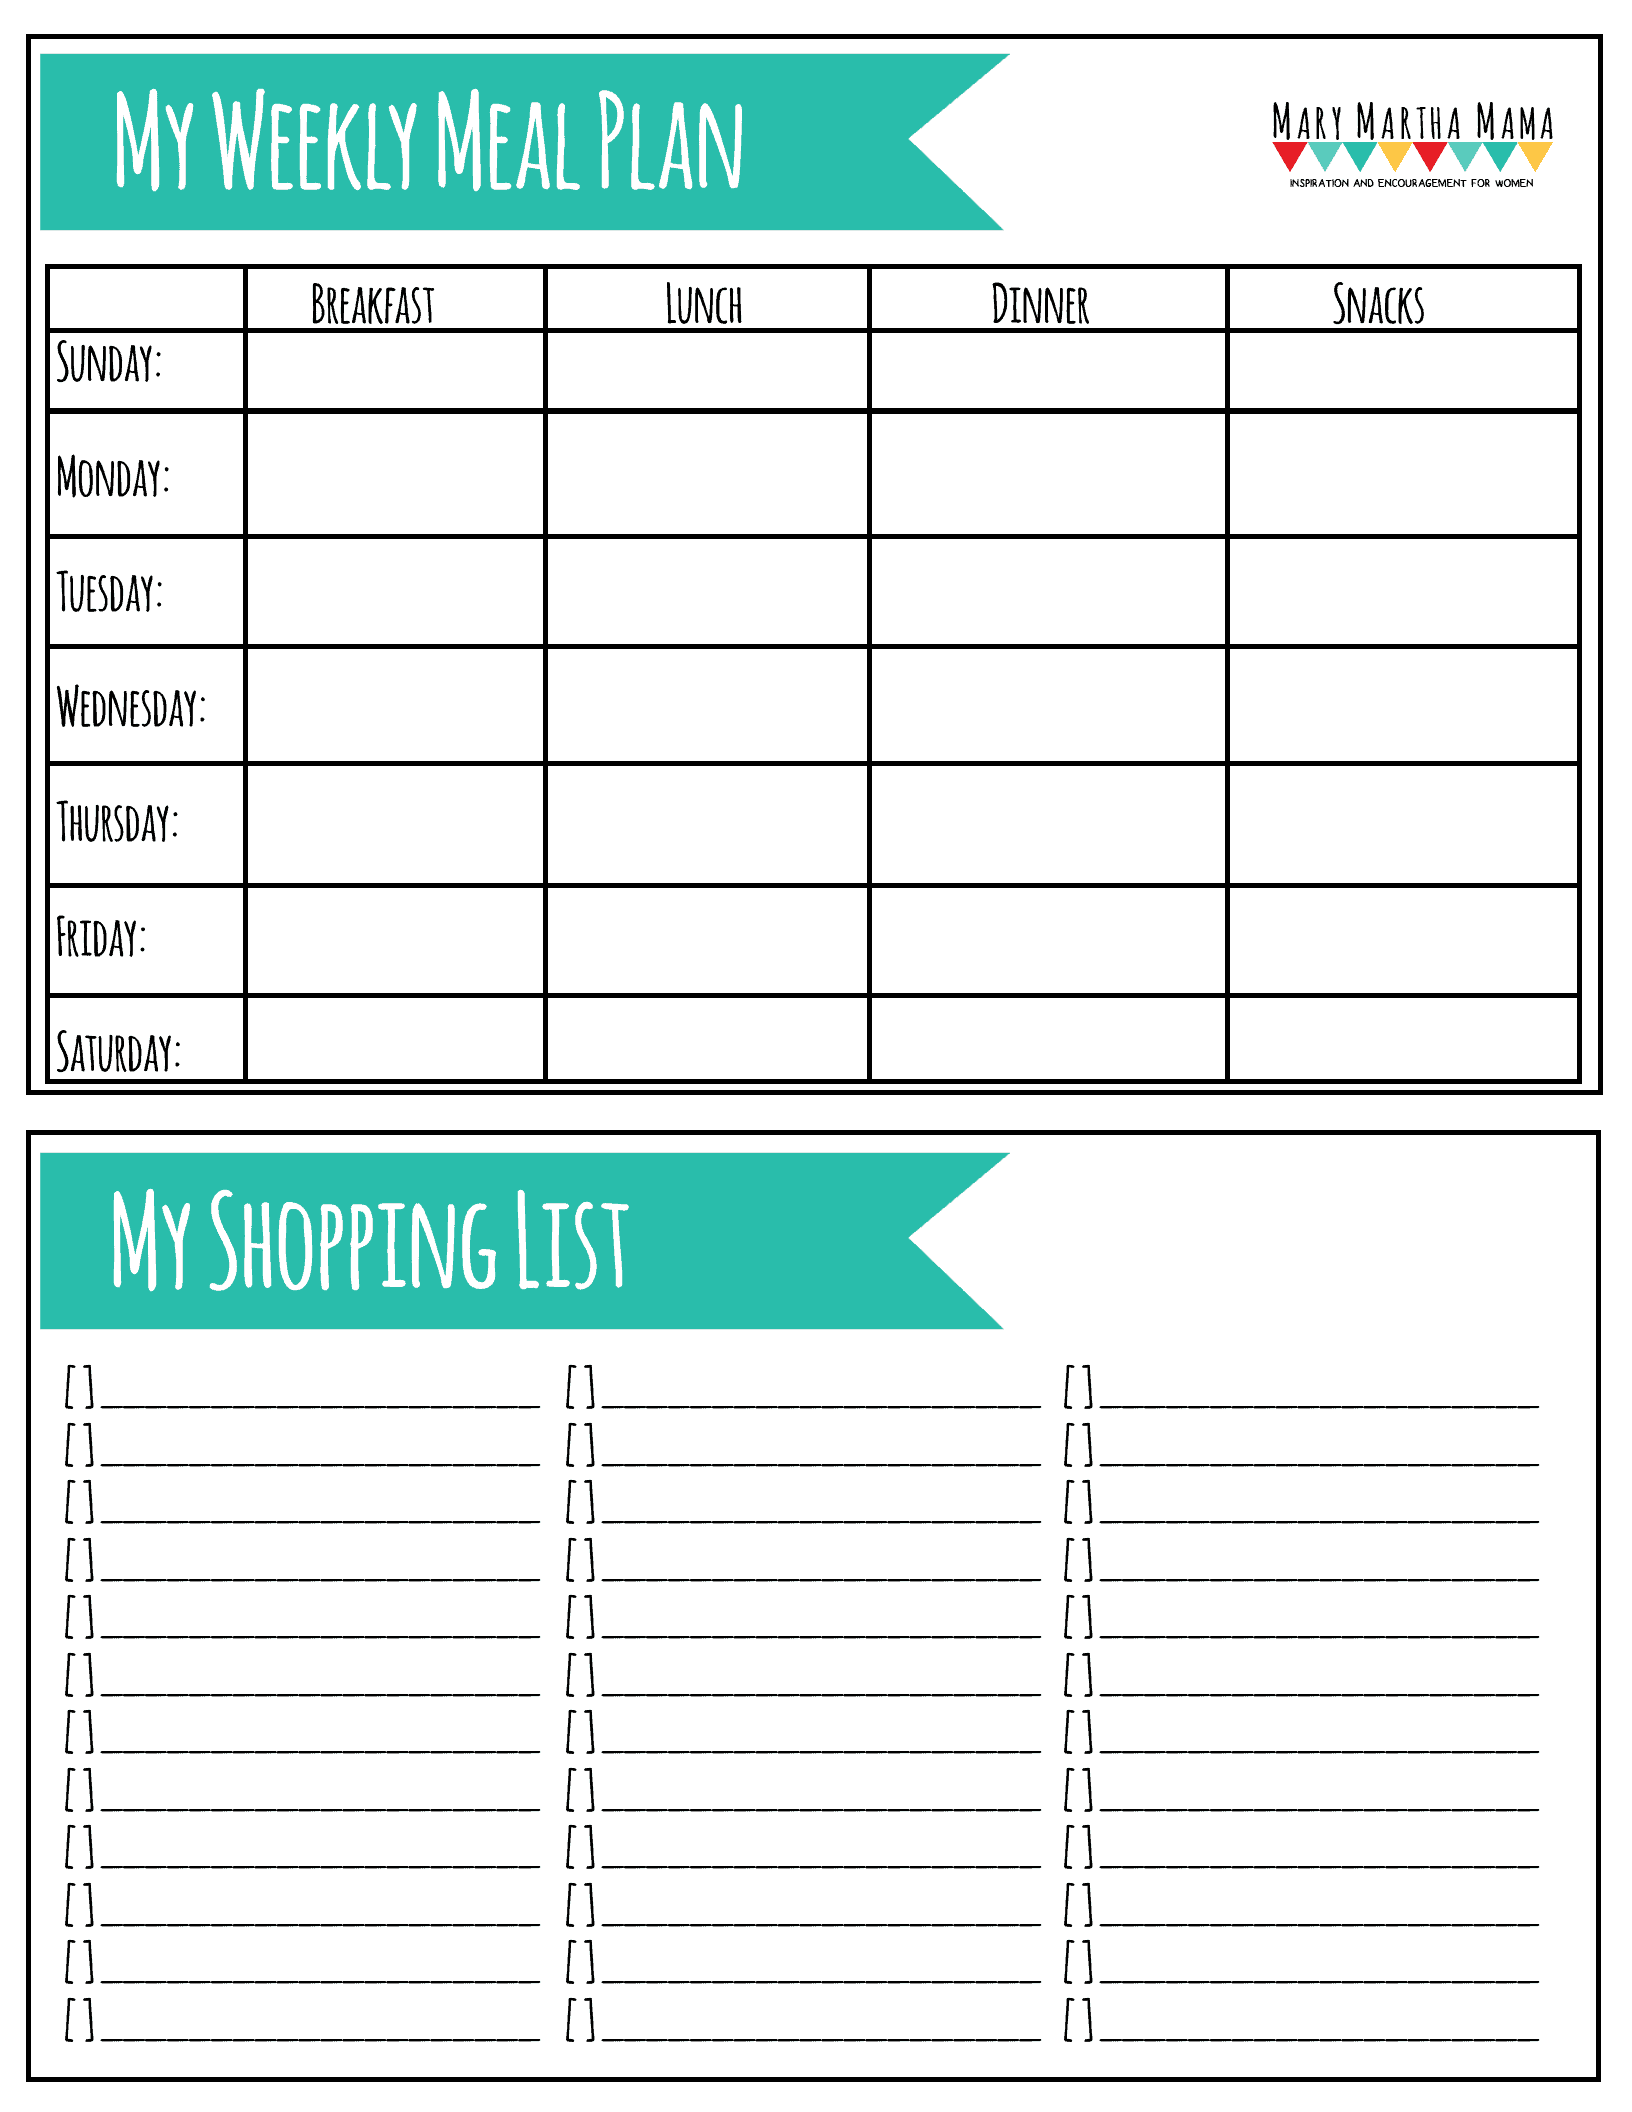 photo regarding Printable Meal Plan titled Printable Supper Application Worksheet Mary Martha Mama